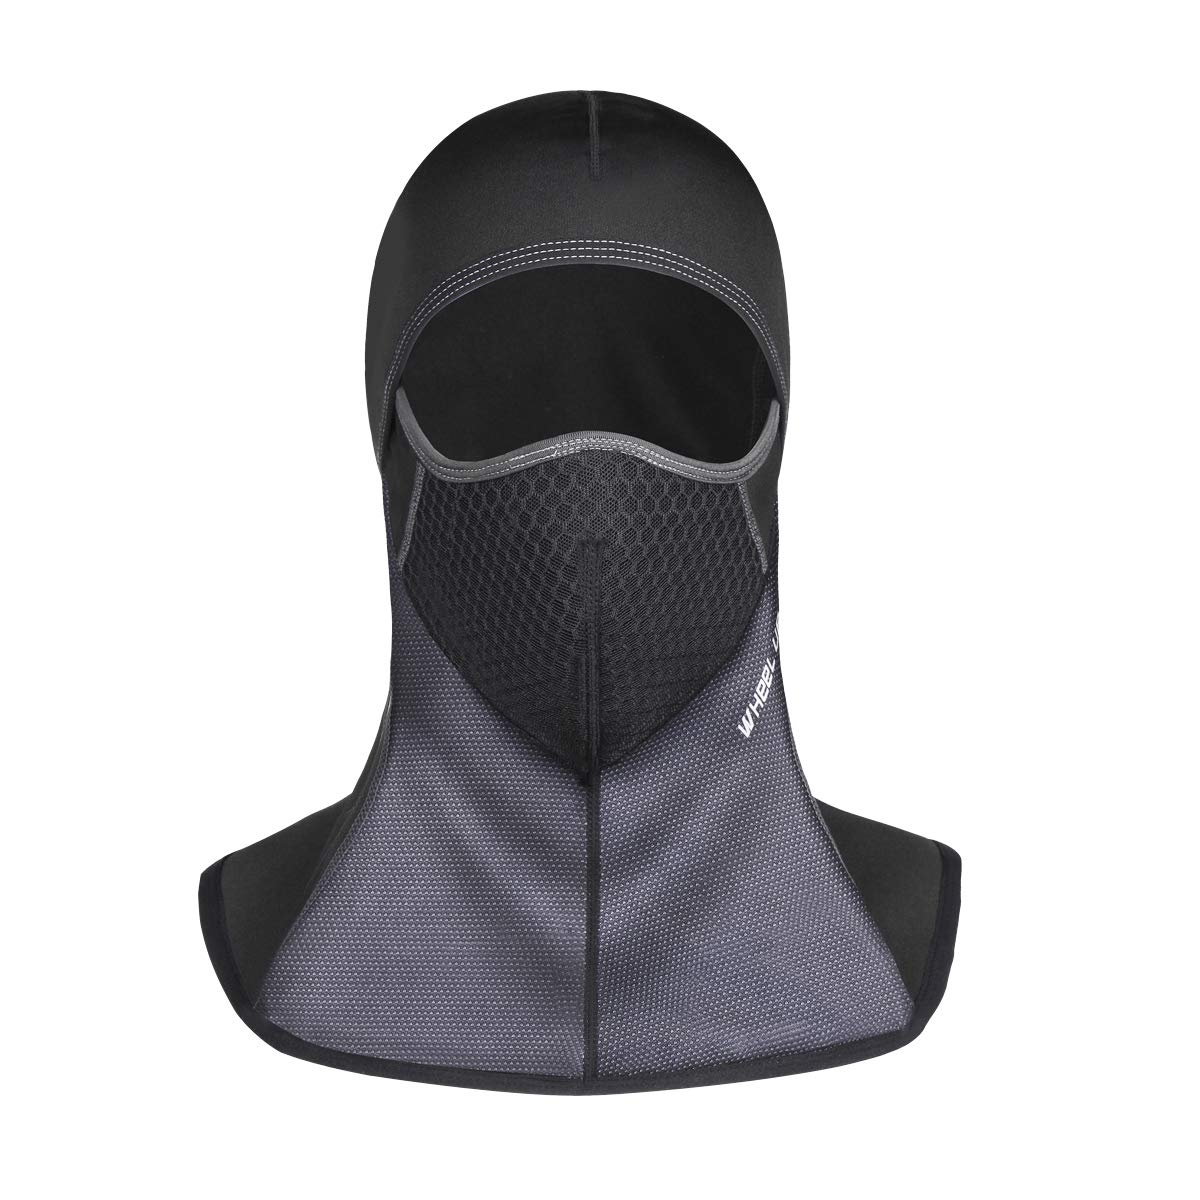 WHEEL UP Windproof Ski Mask Versatile Thermal Winter Sports Balaclava Cold Outdoor Full Face Mask